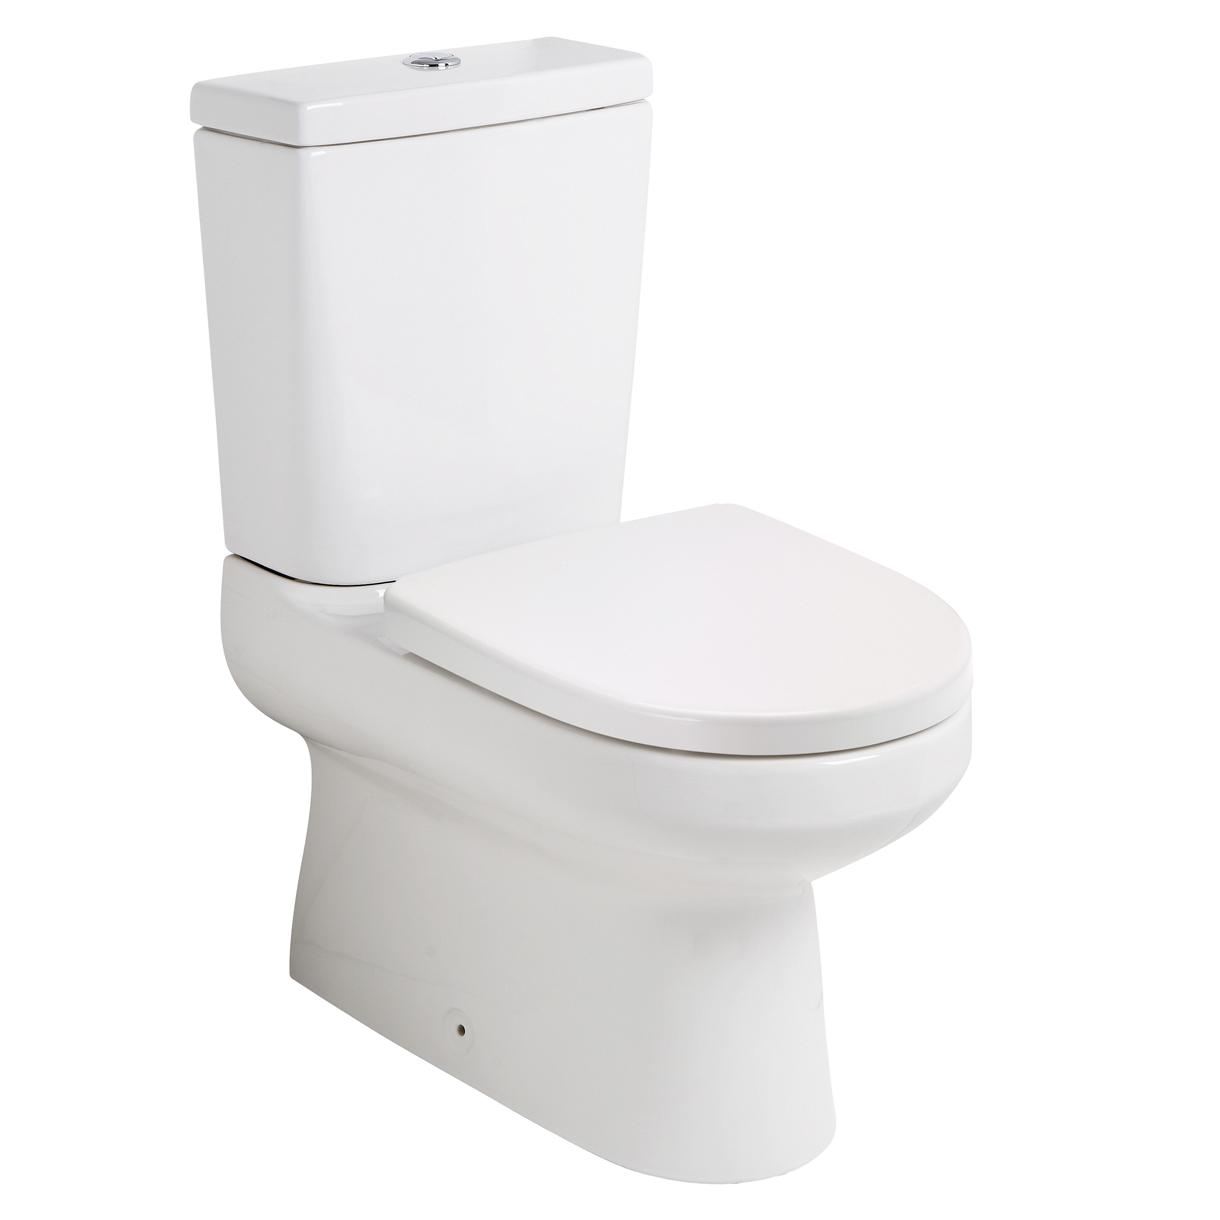 Modecor Toilet Suites Porcher Cygnet Square Back To Wall